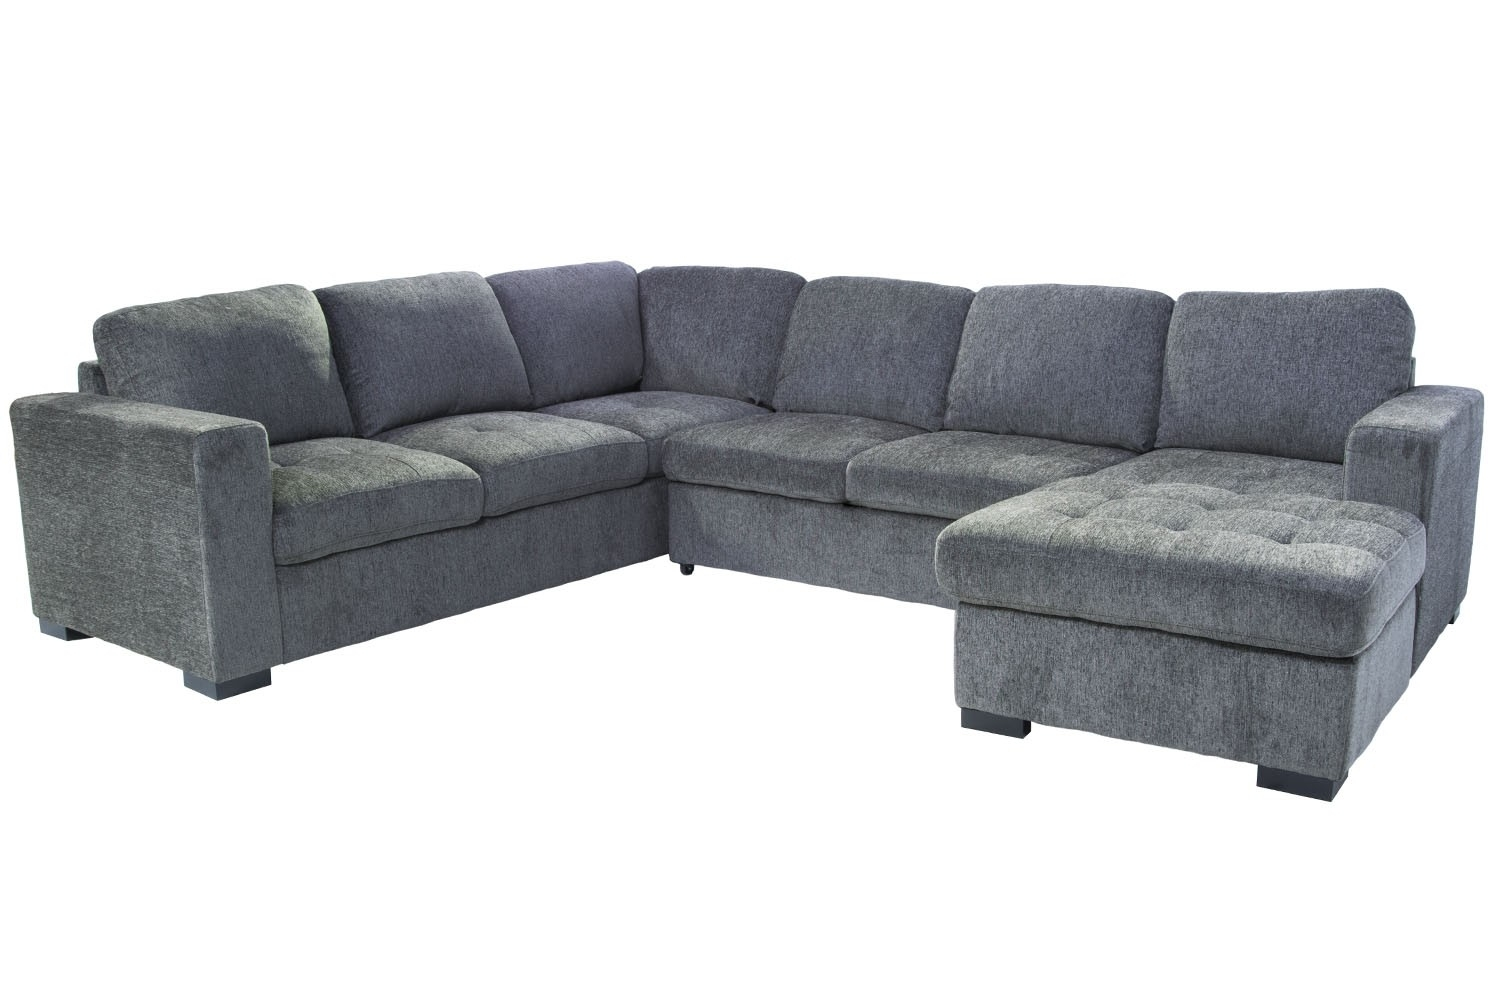 Claire 3 Piece Right Facing Chaise Sectional In Gray | Save Mor Inside Aquarius Light Grey 2 Piece Sectionals With Laf Chaise (View 22 of 25)